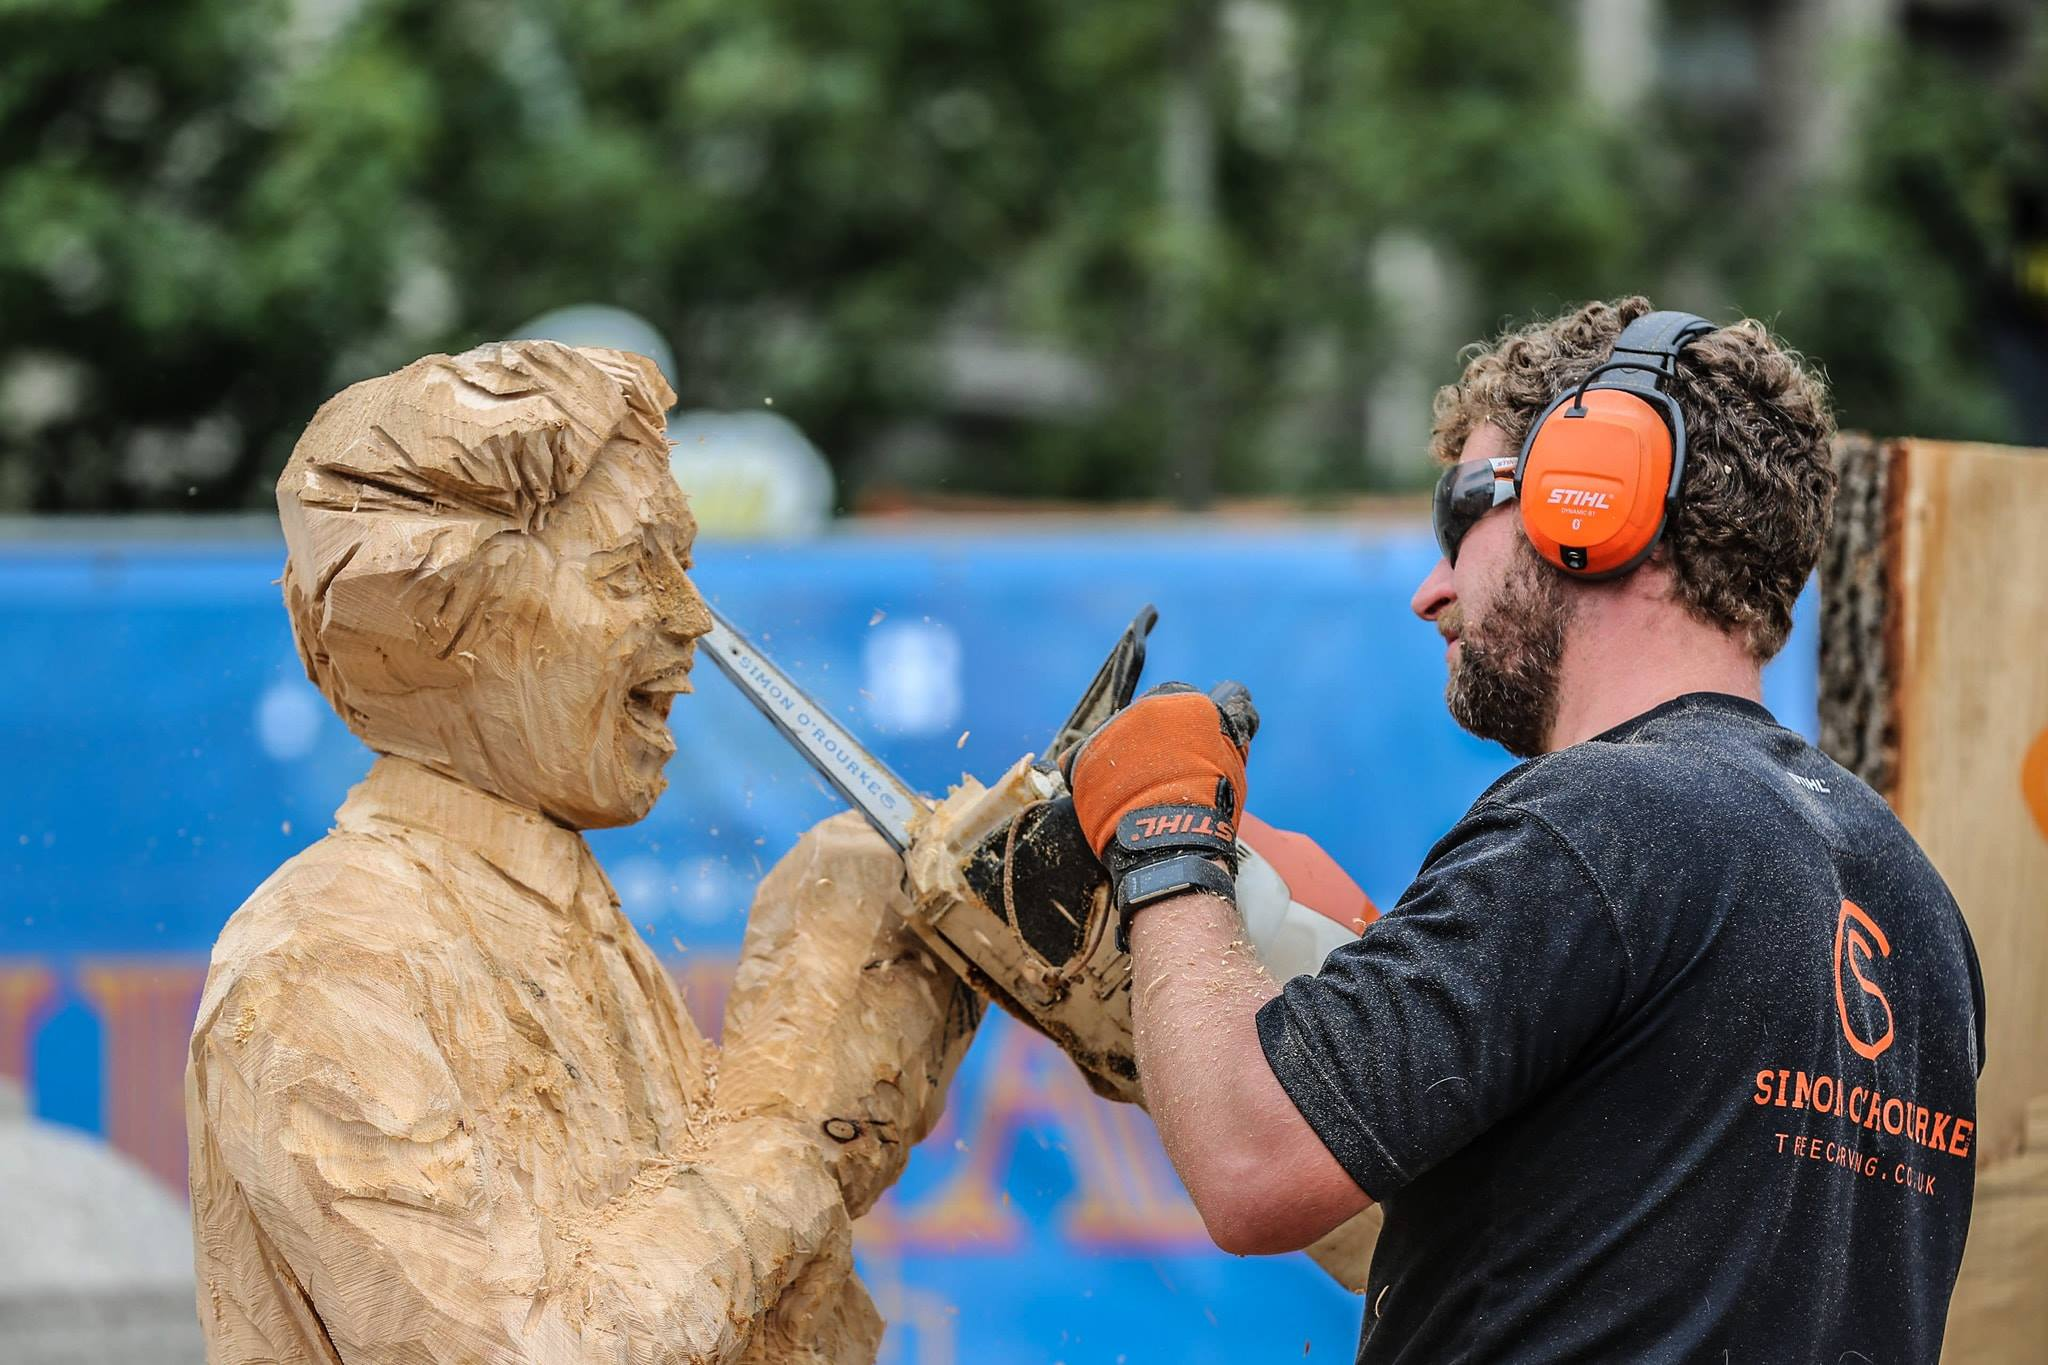 Simon O'Rourke using a chainsaw to carve a wooden sculpture of Ken Dodd